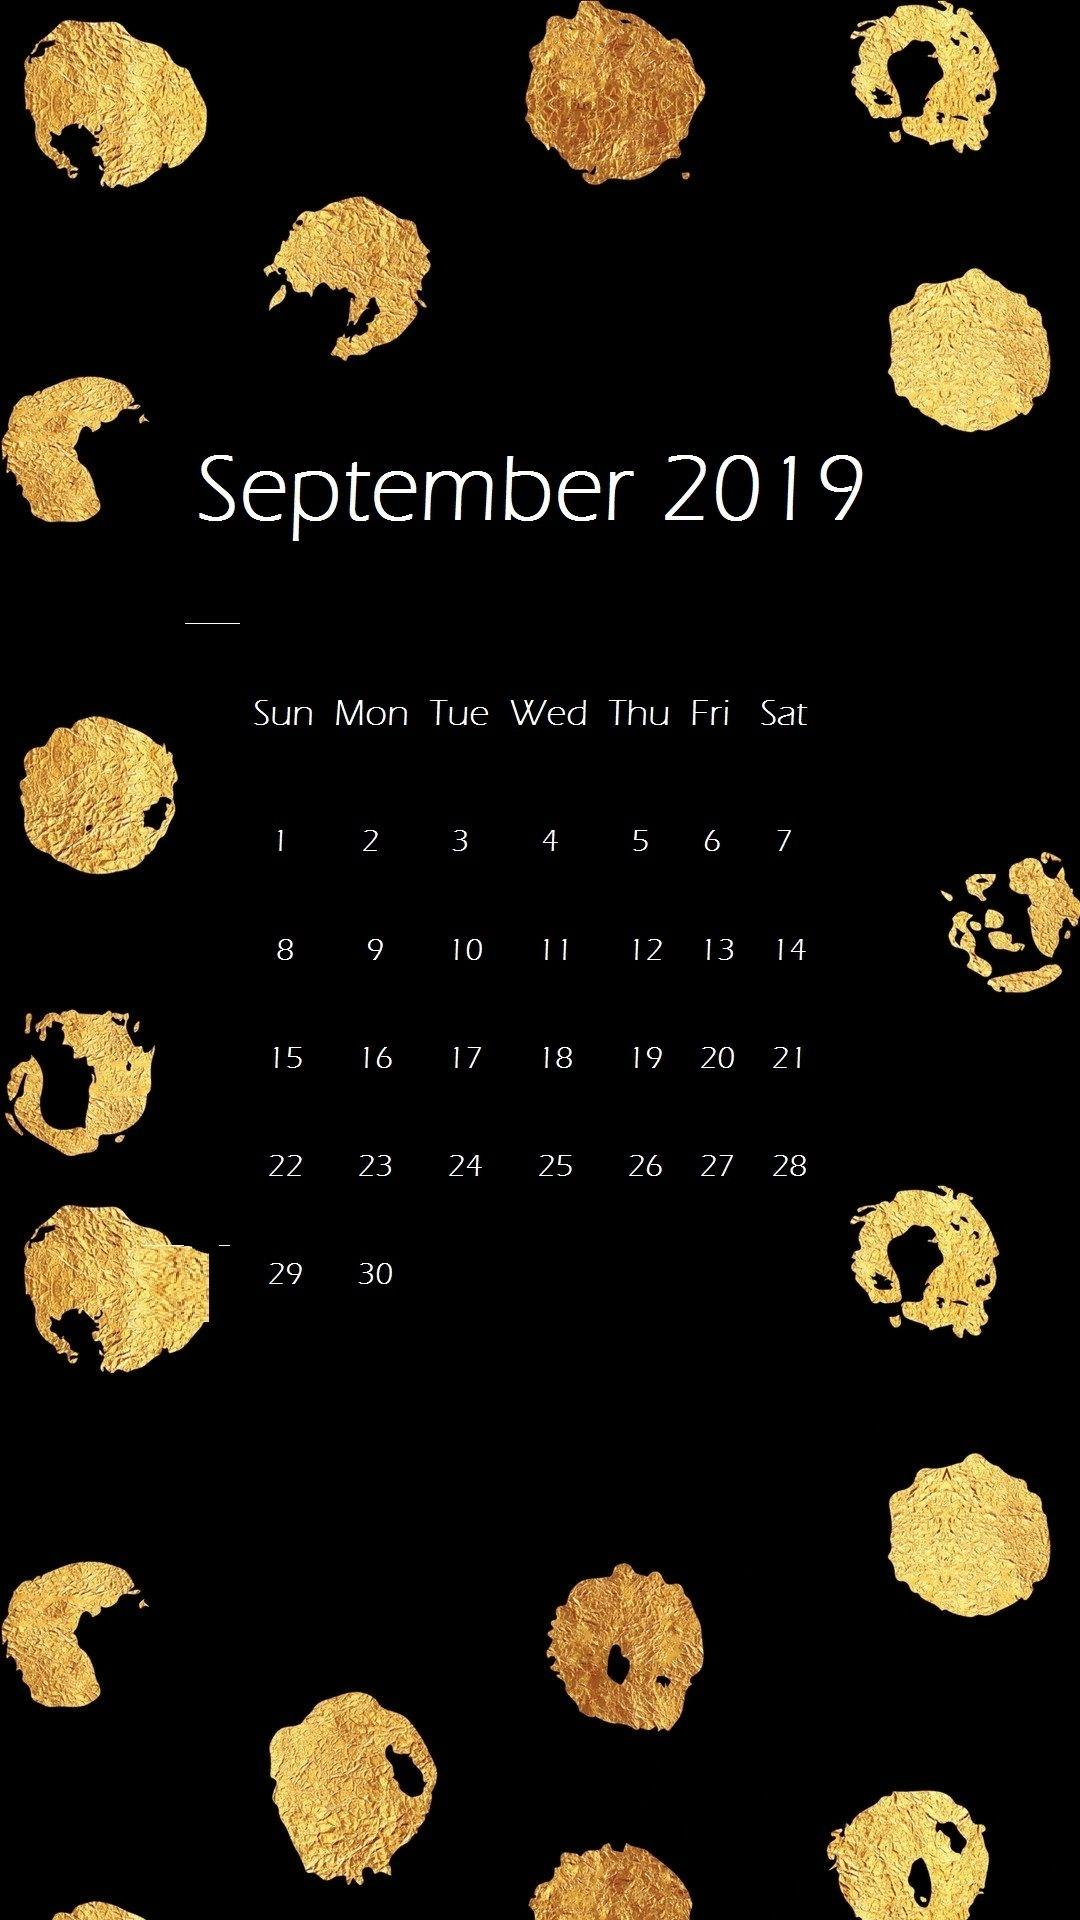 September 2019 Iphone Wallpapers Calendar Calendar 2019September 2019